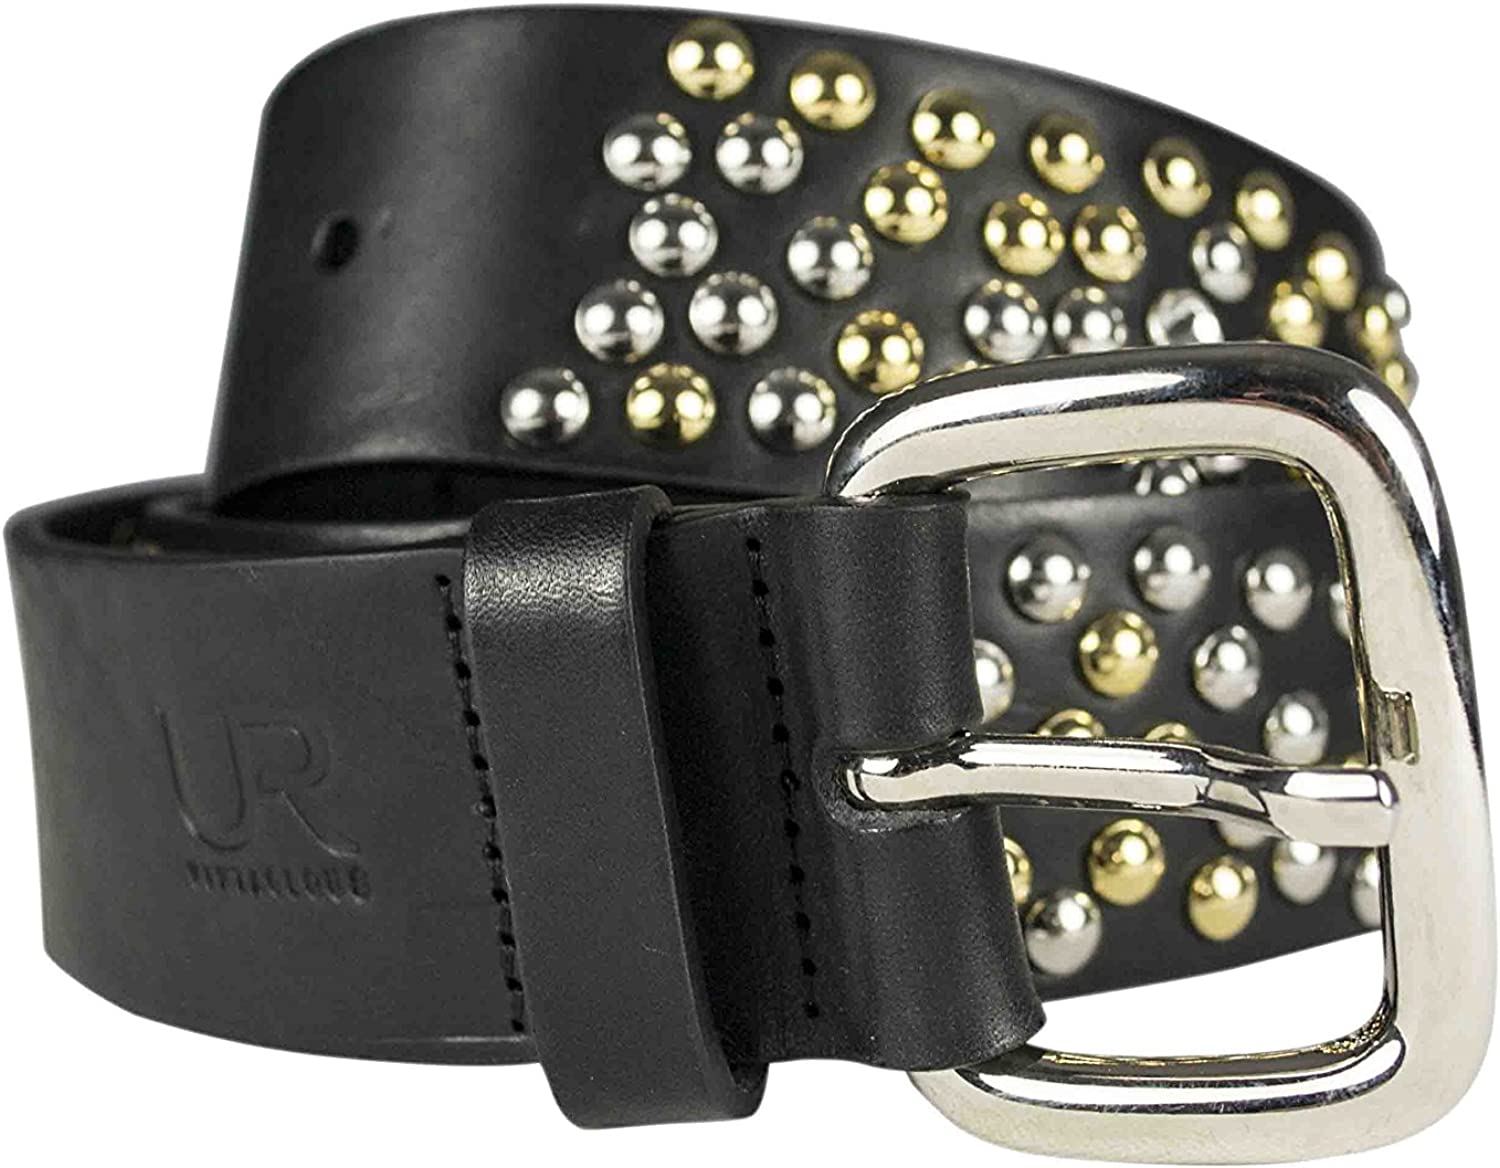 CARISBA Studded leather belt with Swarovsky elements